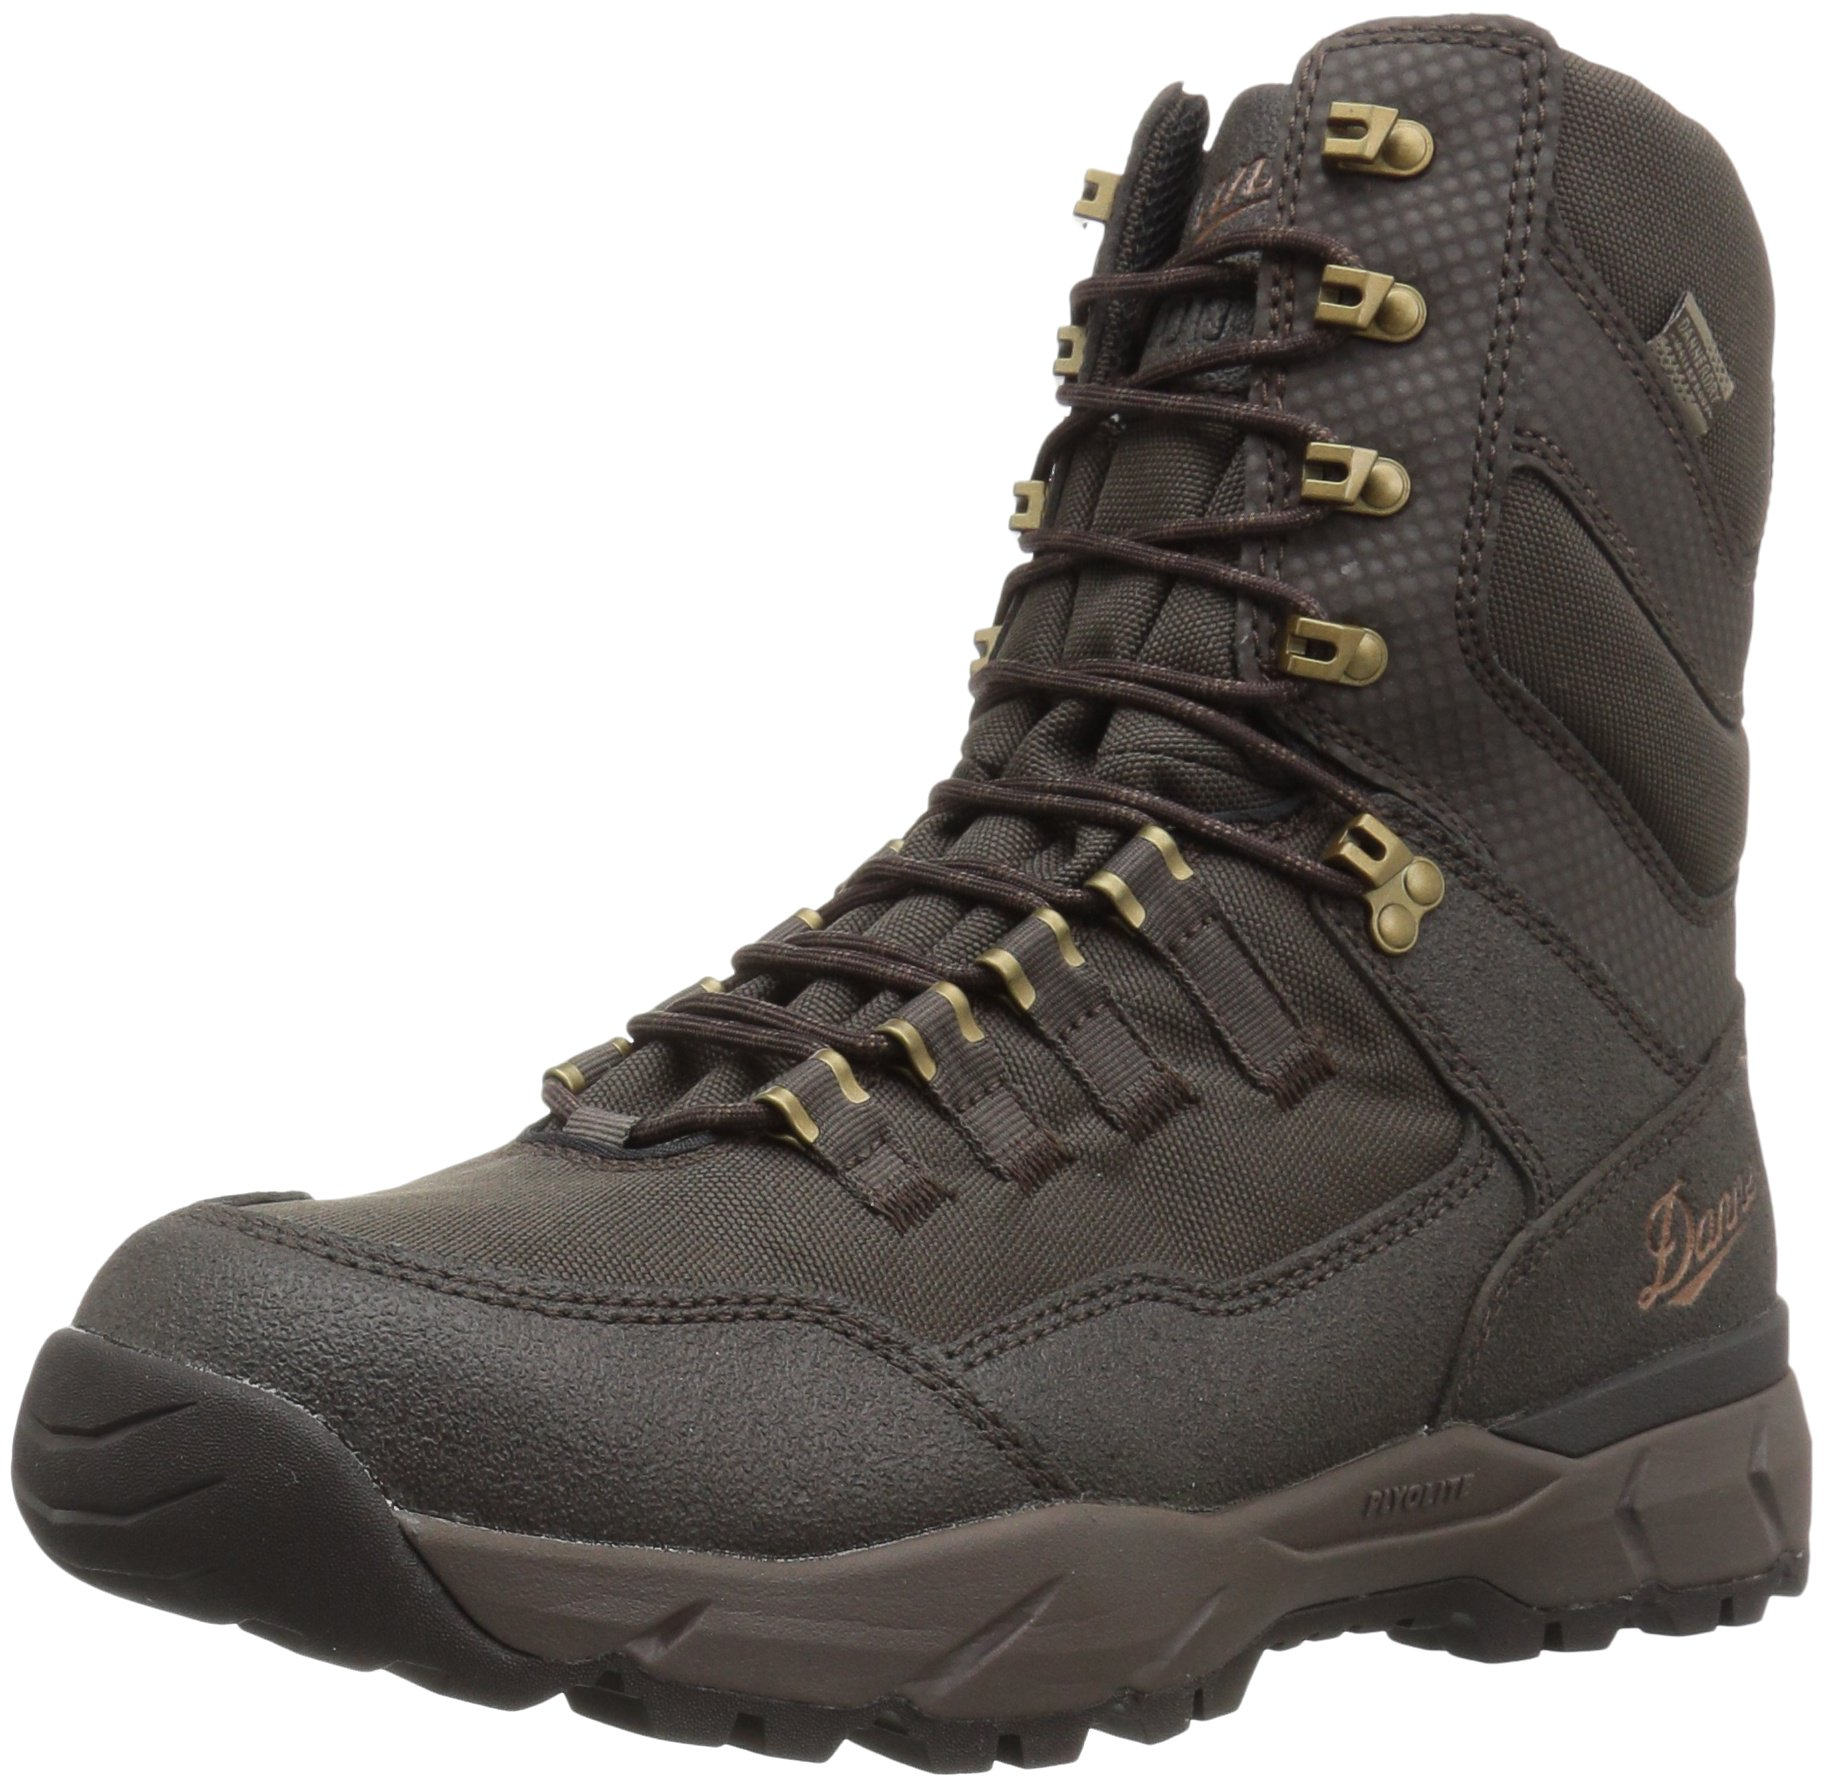 Danner Men's Vital Insulated 400G Hunting Shoes Brown 8 D US by Danner (Image #1)